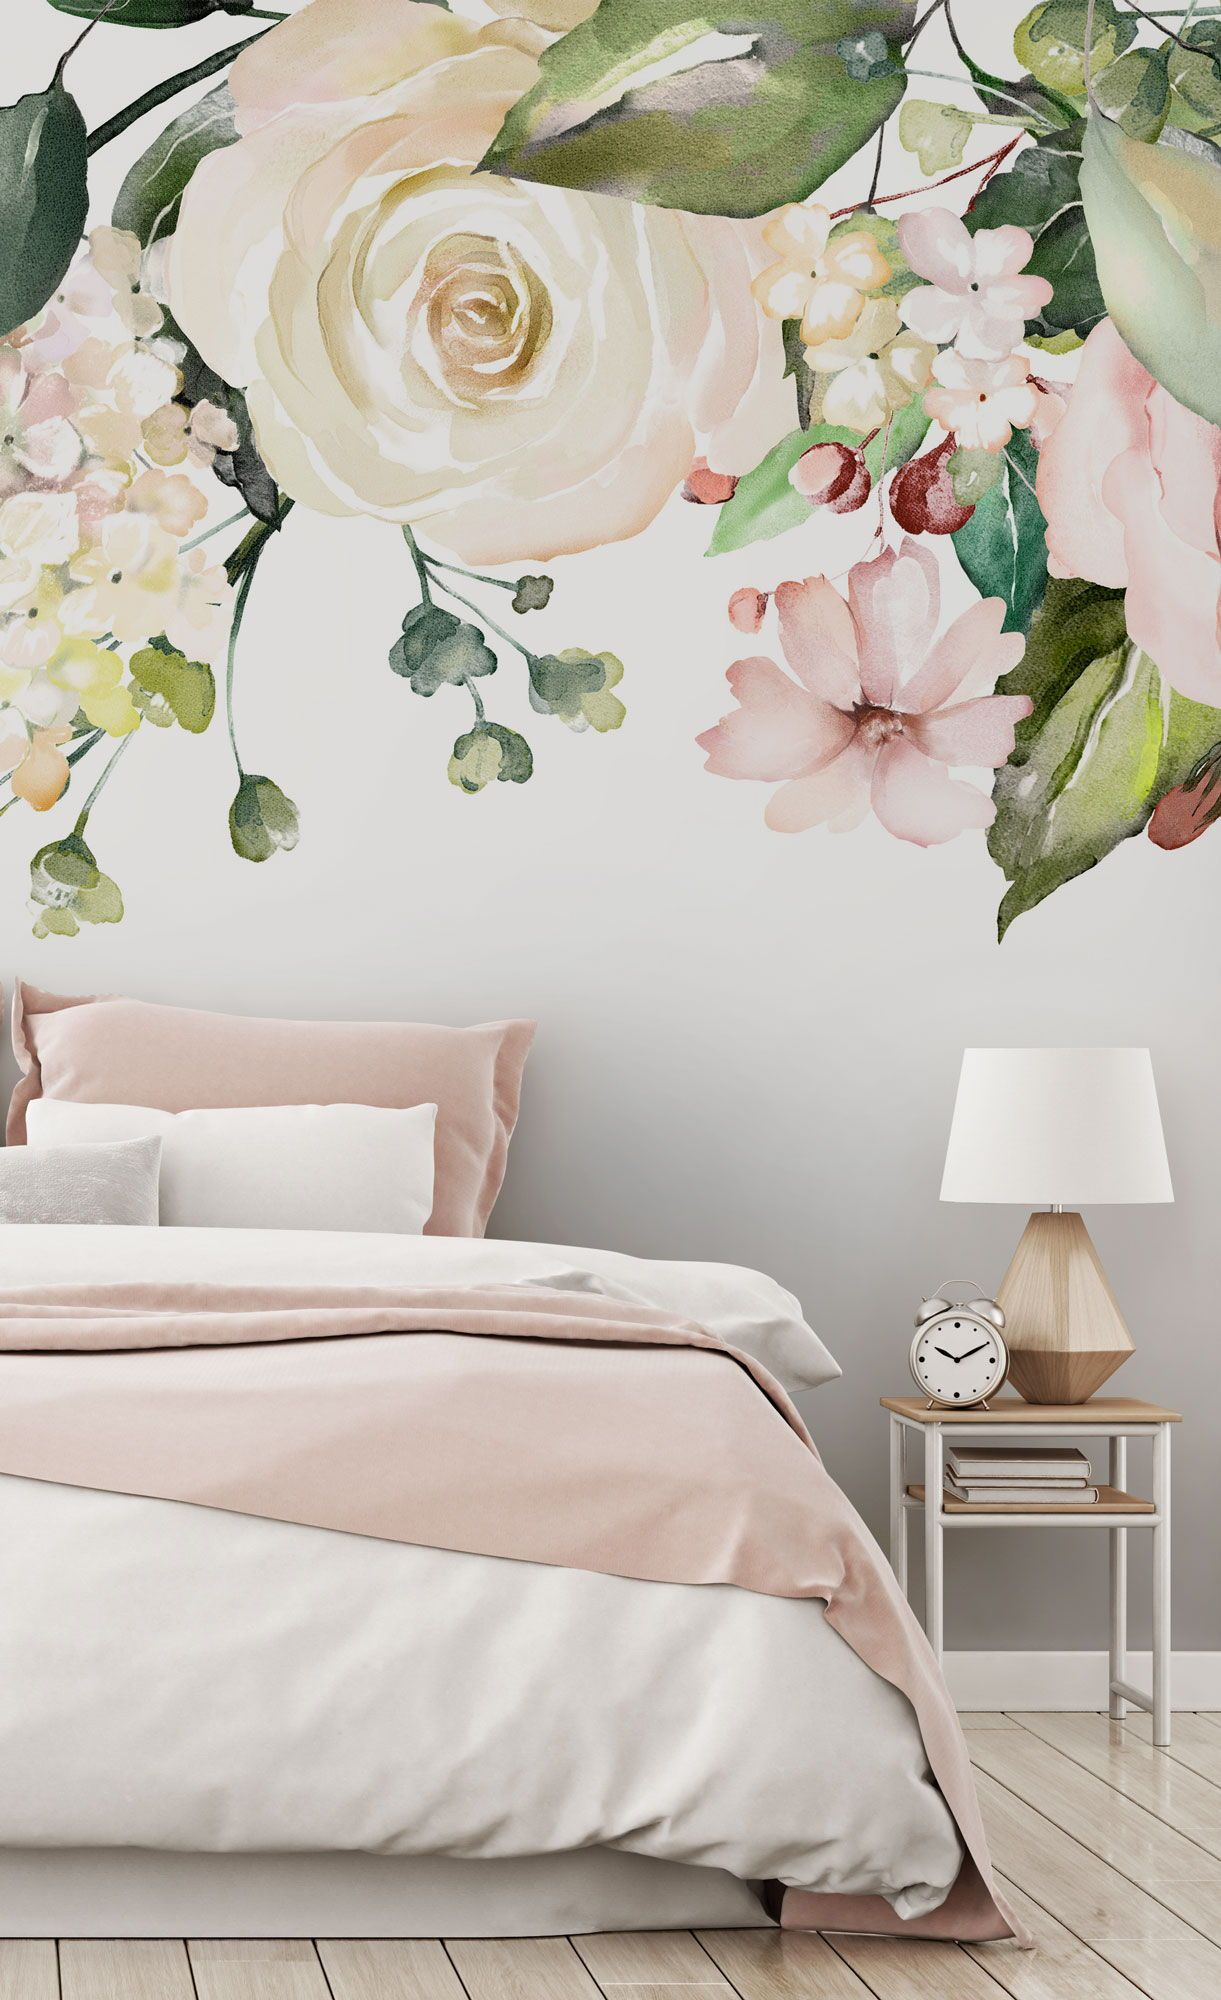 Aren T These The Dreamiest Walls You Ve Ever Seen Discover Our Huge Range Of Wall Murals Pink Wallpaper Bedroom Wall Murals Flower Bedroom Flower bedroom wallpaper images